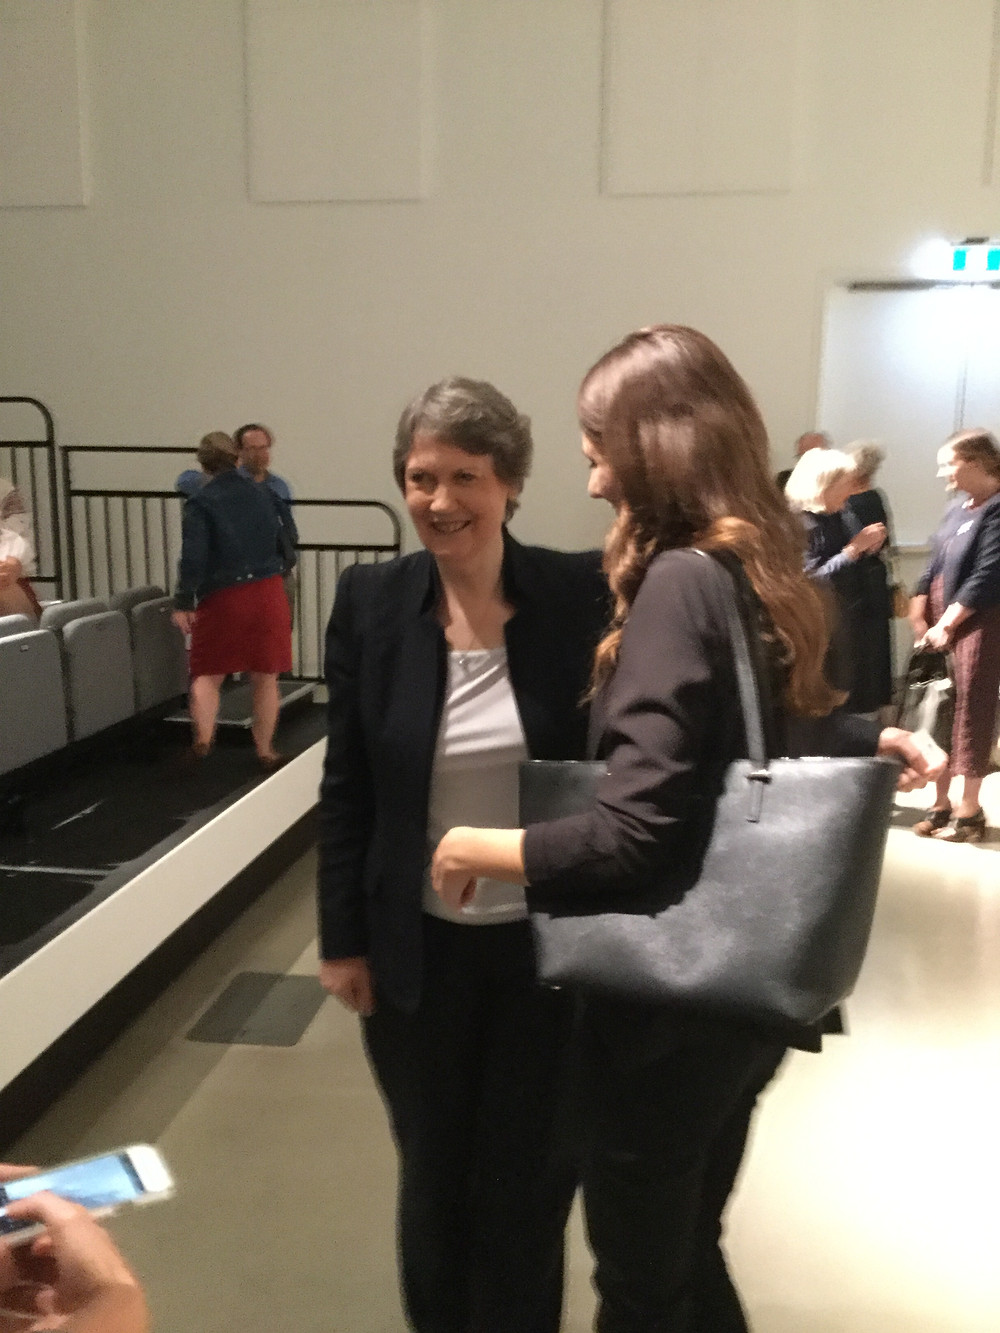 Helen Clark (left) meets young women after a screening of My Year with Helen on June 11, 2018 at the Ottawa Art Gallery. Photo credit:  Geoffrey P. Johnston